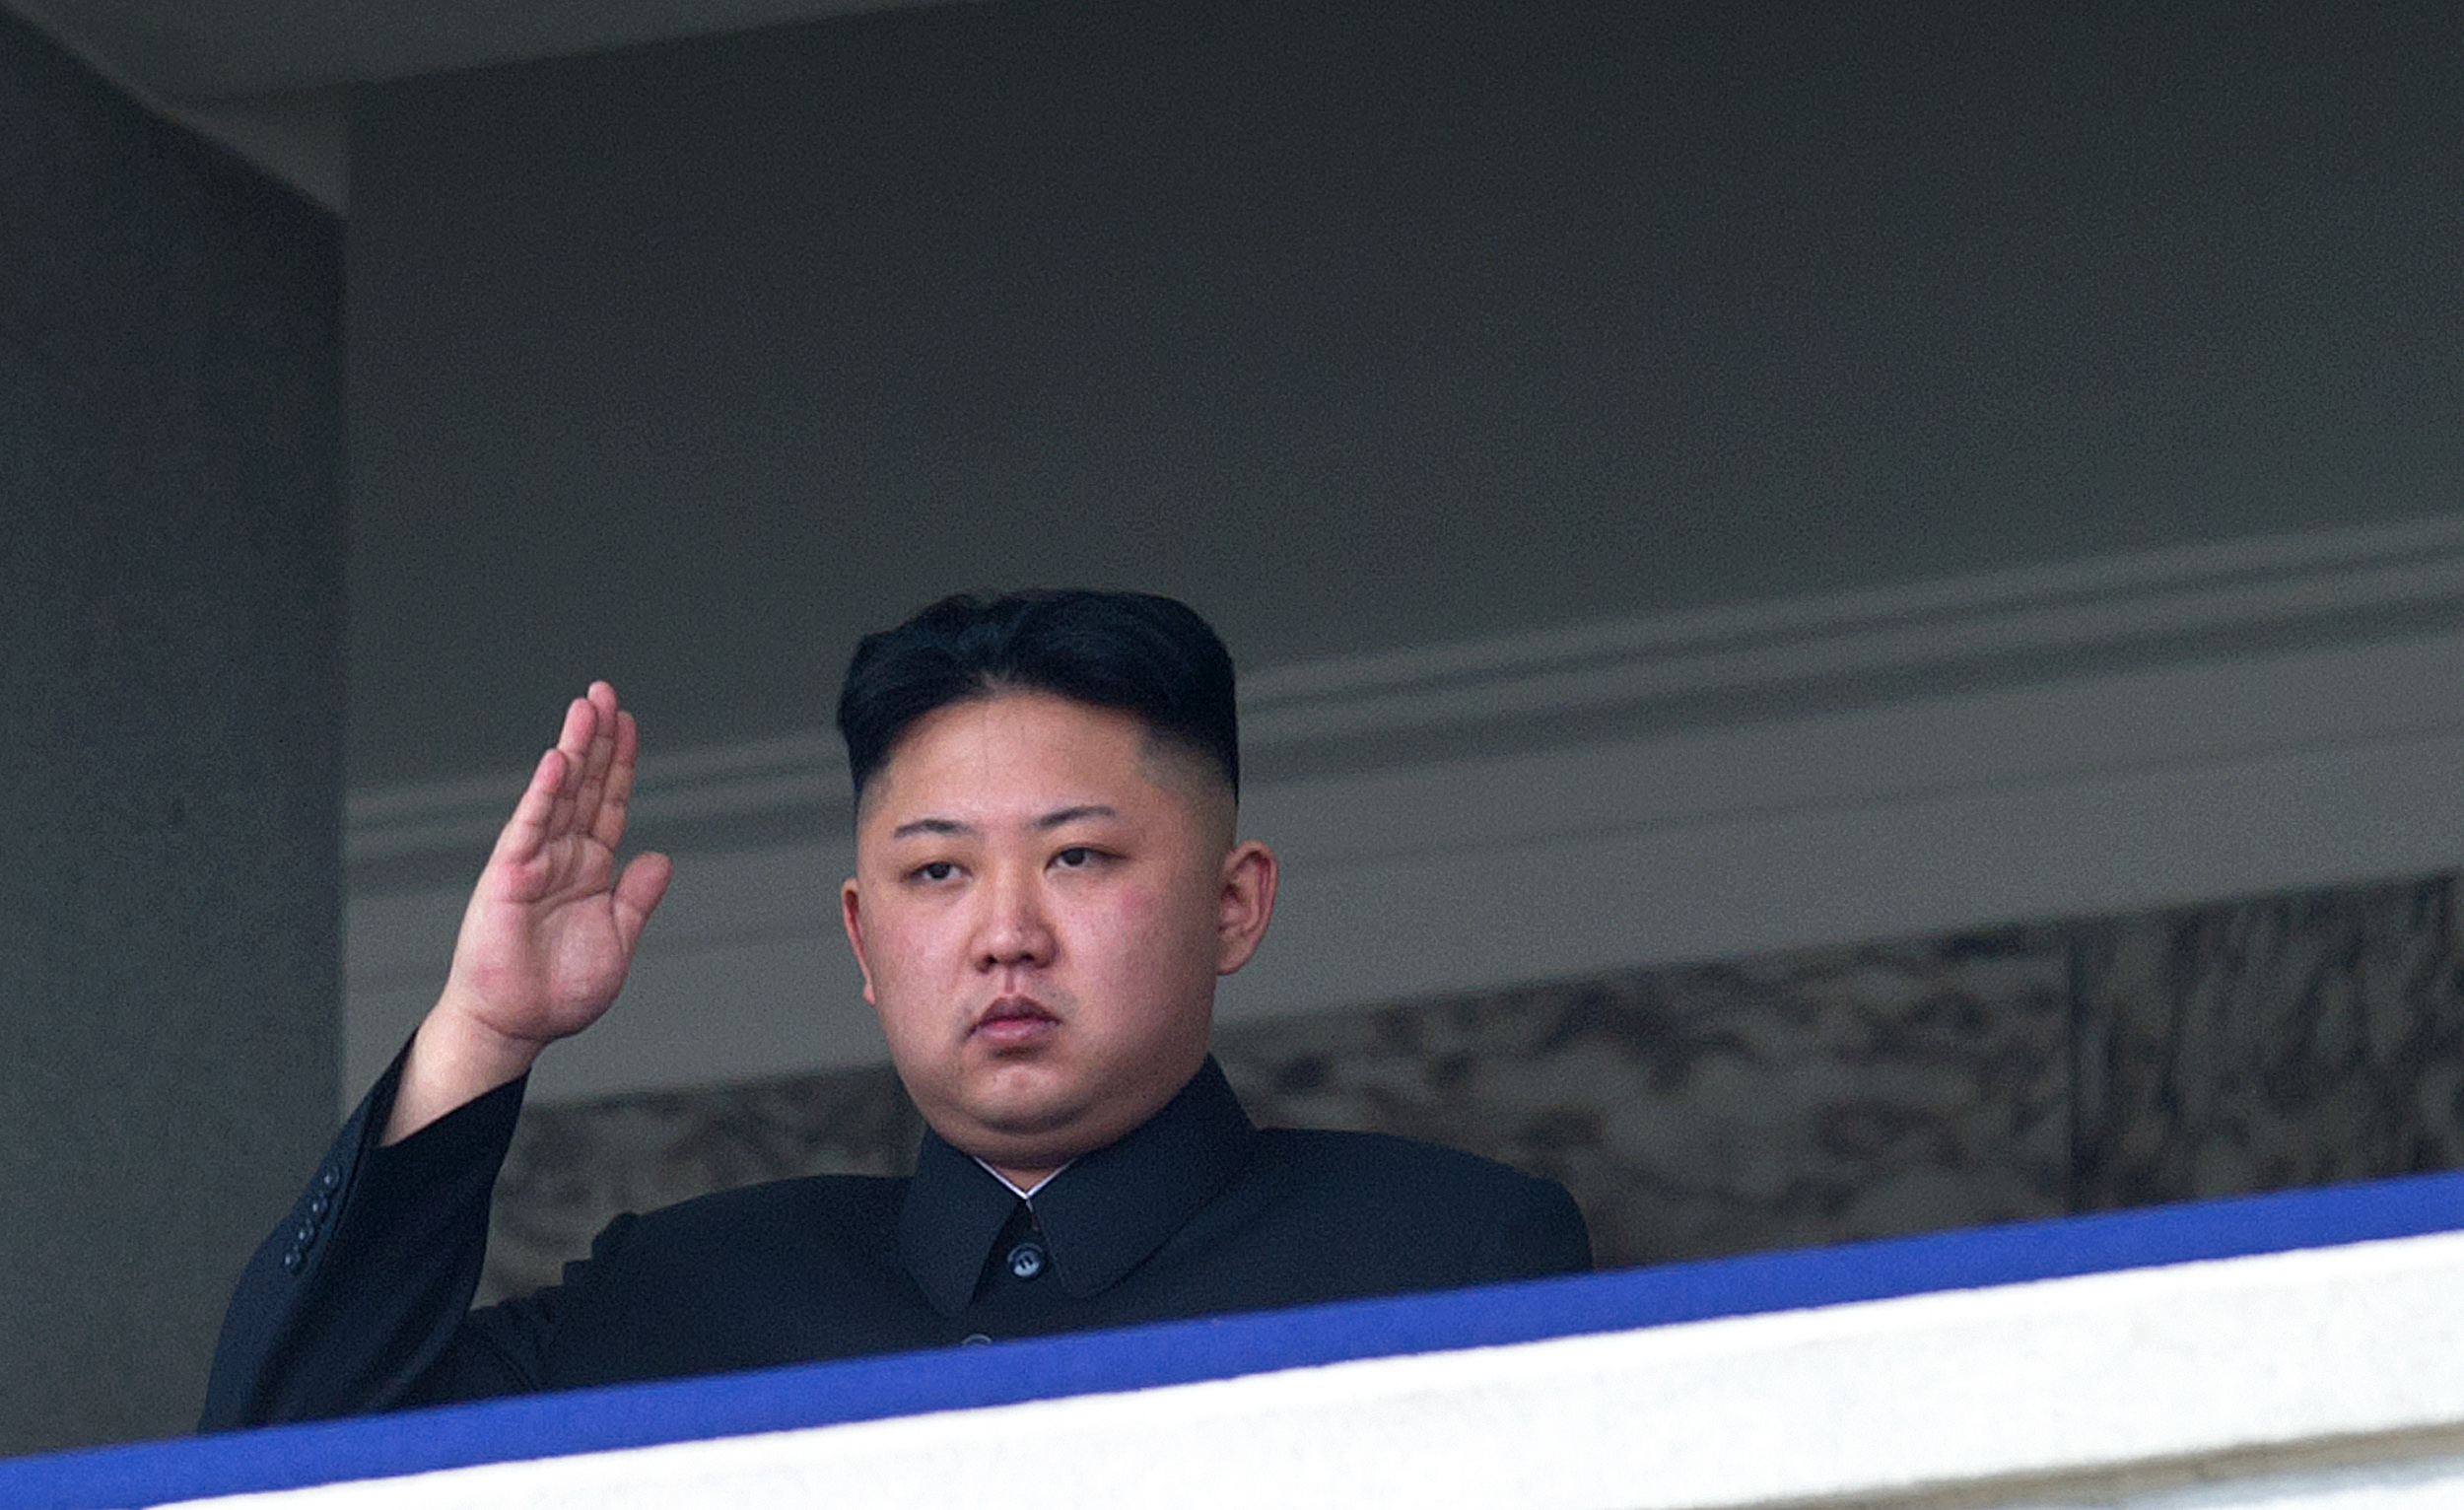 North Korean leader Kim Jong-Un saluting as he watches a military parade in Pyongyang on April 15, 2012 .